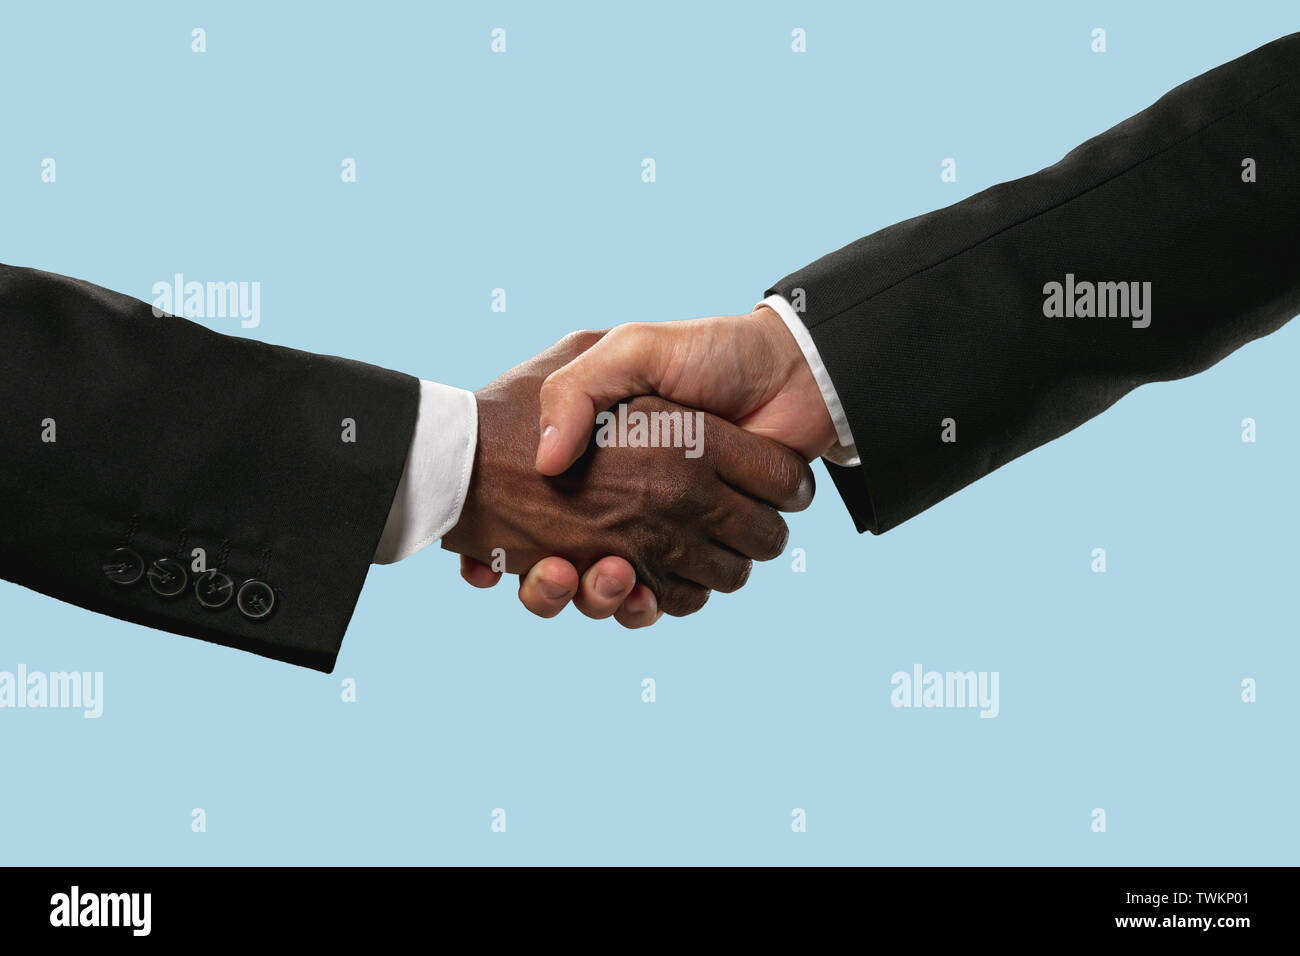 Sign of joint plans for the future. Teamwork and communications. Two male hands shaking isolated on blue studio background. Concept of help, partnership, friendship, relation, business, togetherness. Stock Photo